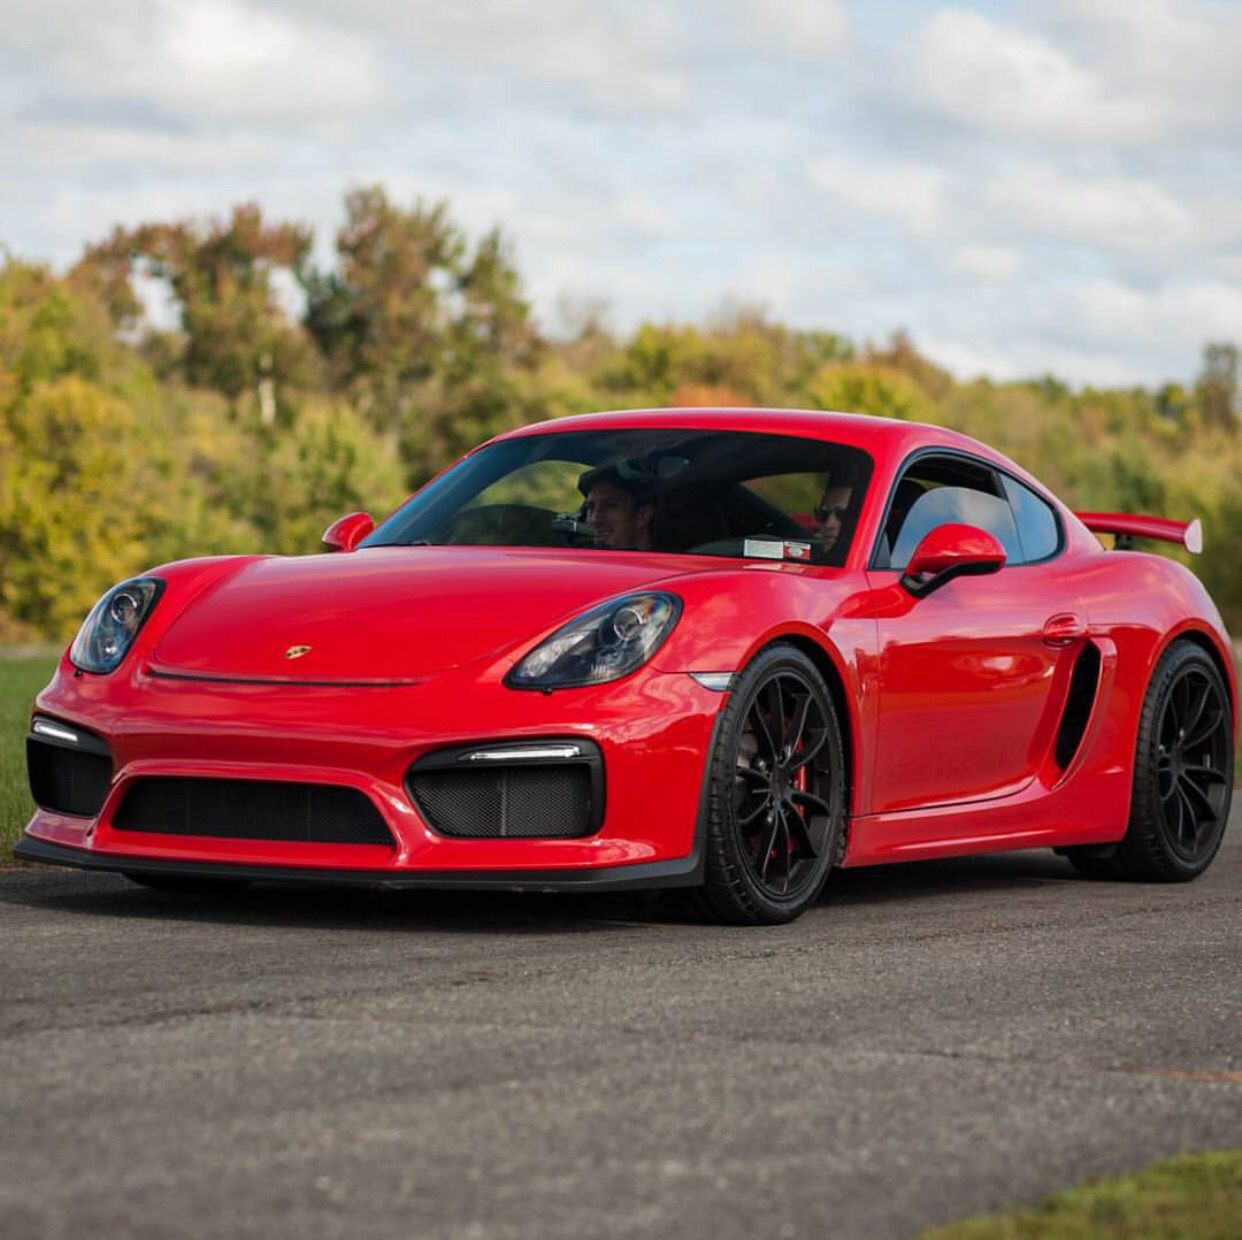 Porsche Cayman GT4 Painted In Guards Red Photo Taken By